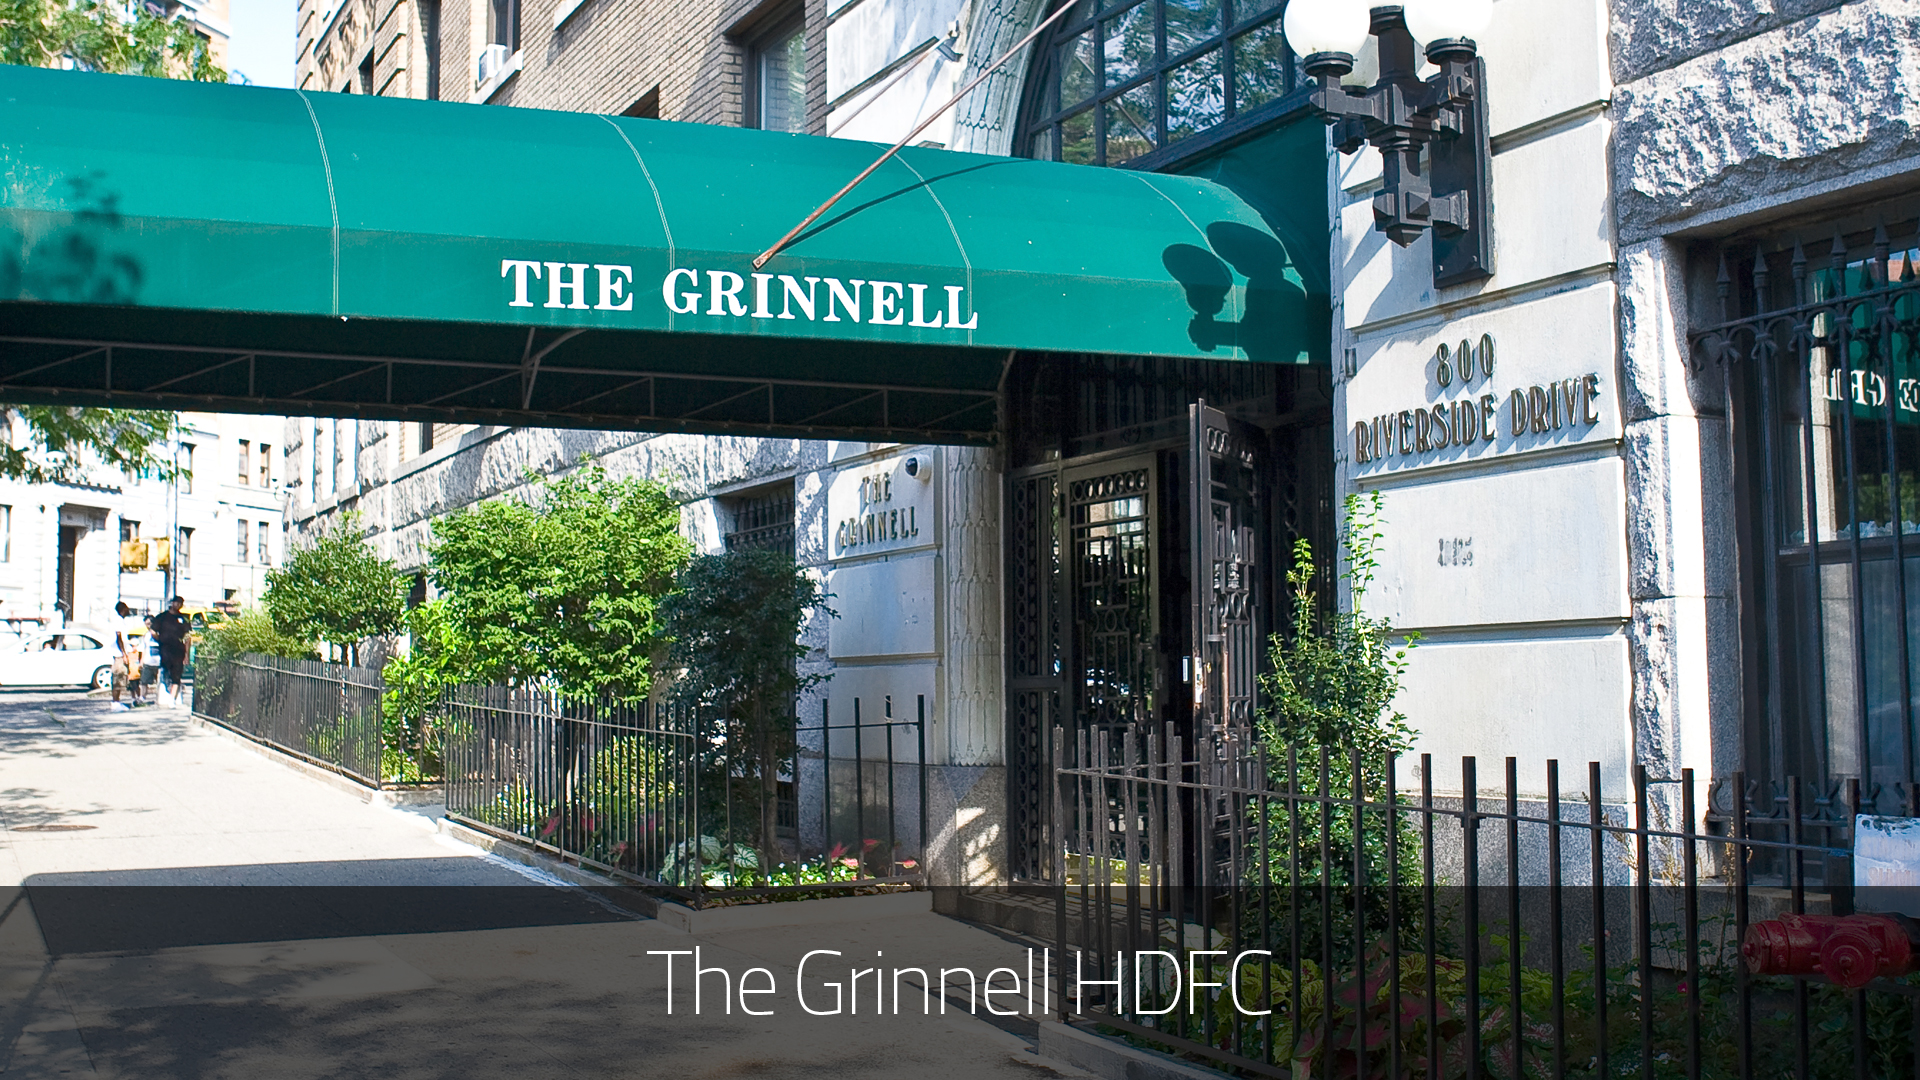 The grinnell hdfc